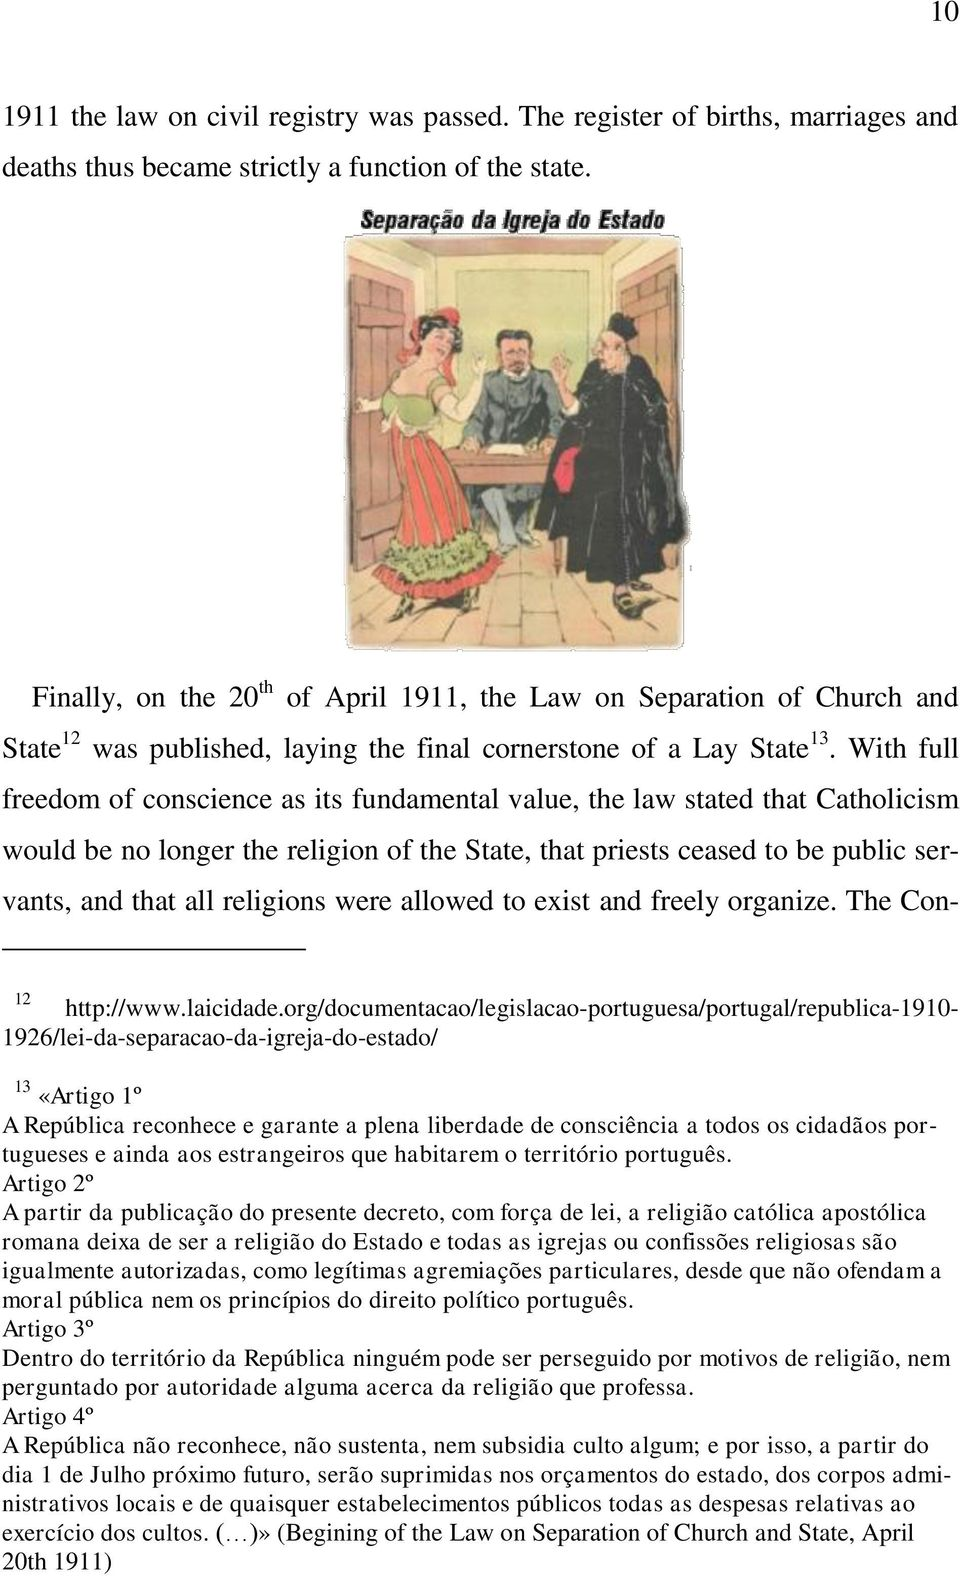 With full freedom of conscience as its fundamental value, the law stated that Catholicism would be no longer the religion of the State, that priests ceased to be public servants, and that all